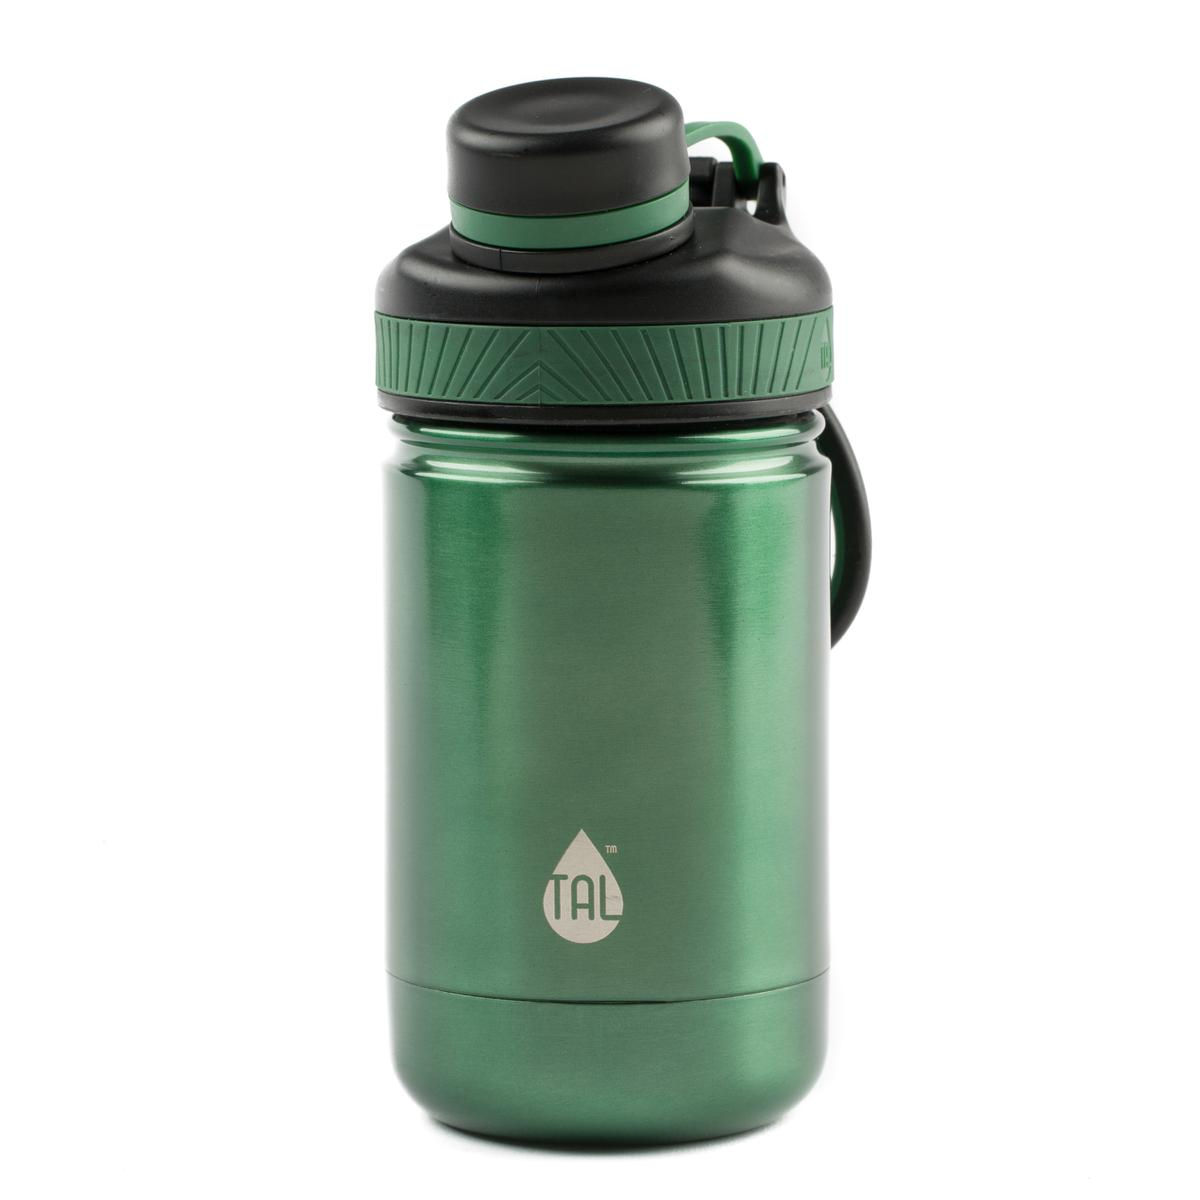 Tal Stainless Steel 12 Ounce Green Double Wall Vacuum Insulated Ranger Pro Water Bottle